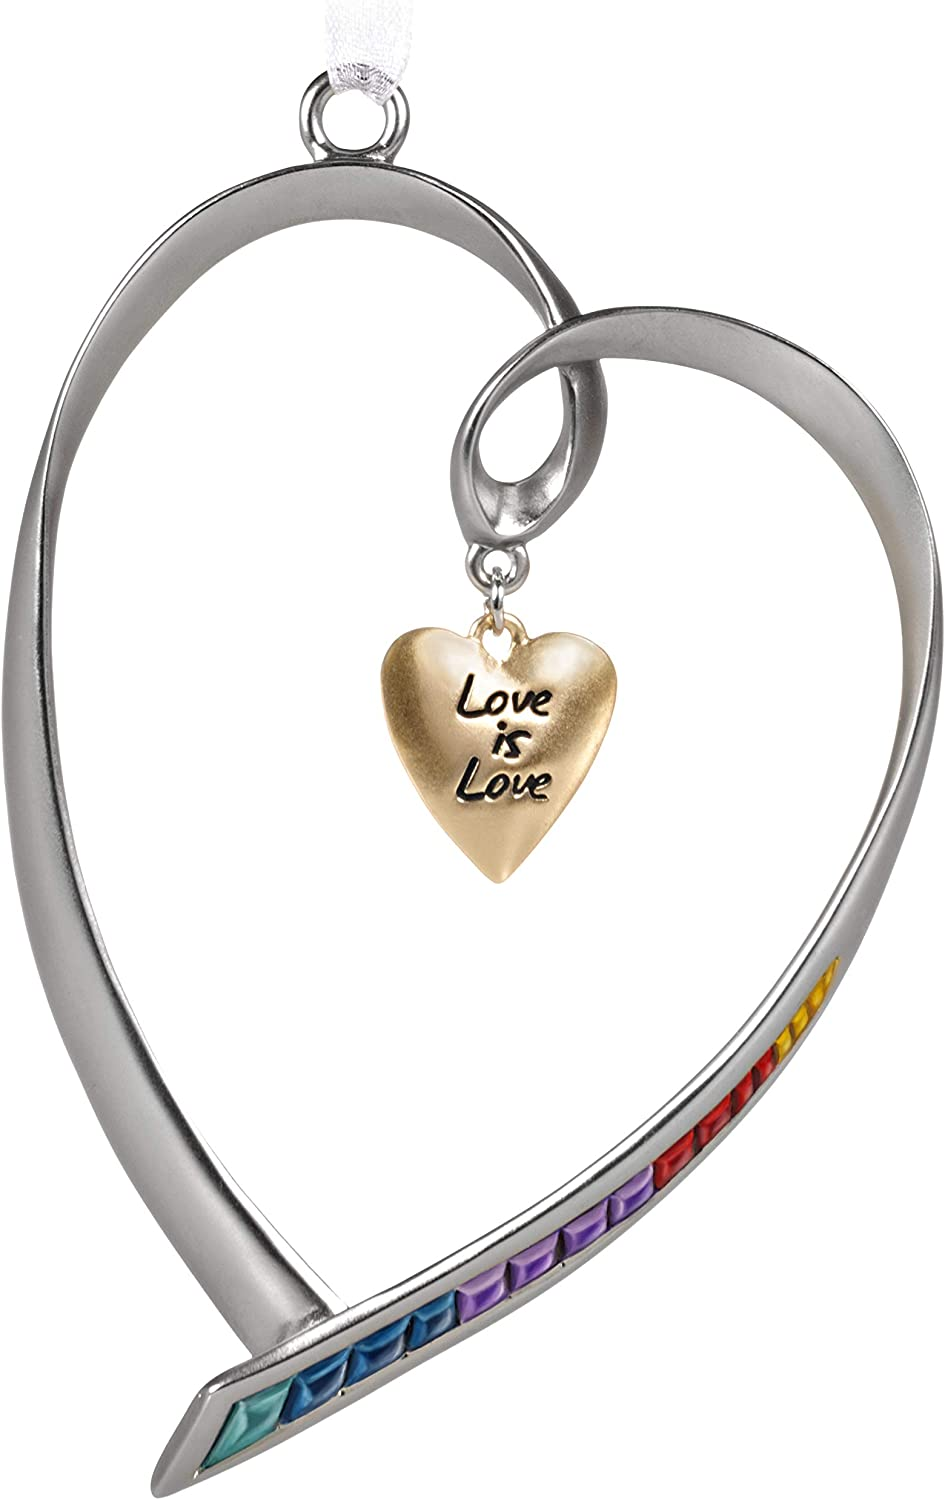 Amazon Com Hallmark Keepsake Christmas Ornament 2020 Love Is Love Rainbow Heart Metal Home Kitchen